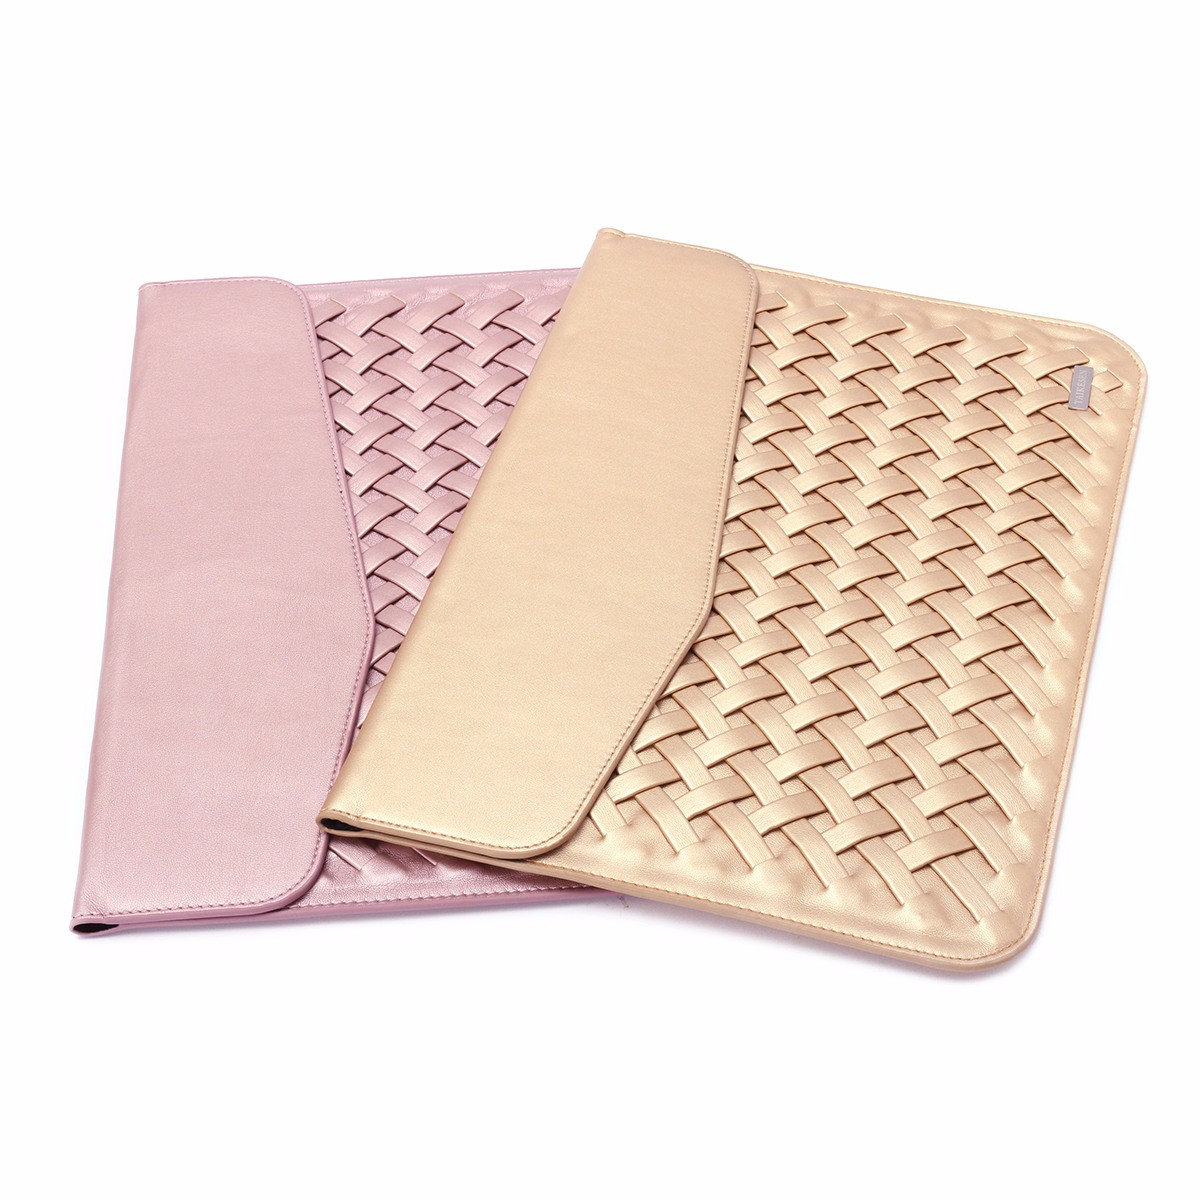 13 inch Weaving Laptop Bag PU Leather Case Cover Bag for Xiaomi Makbook Laptop